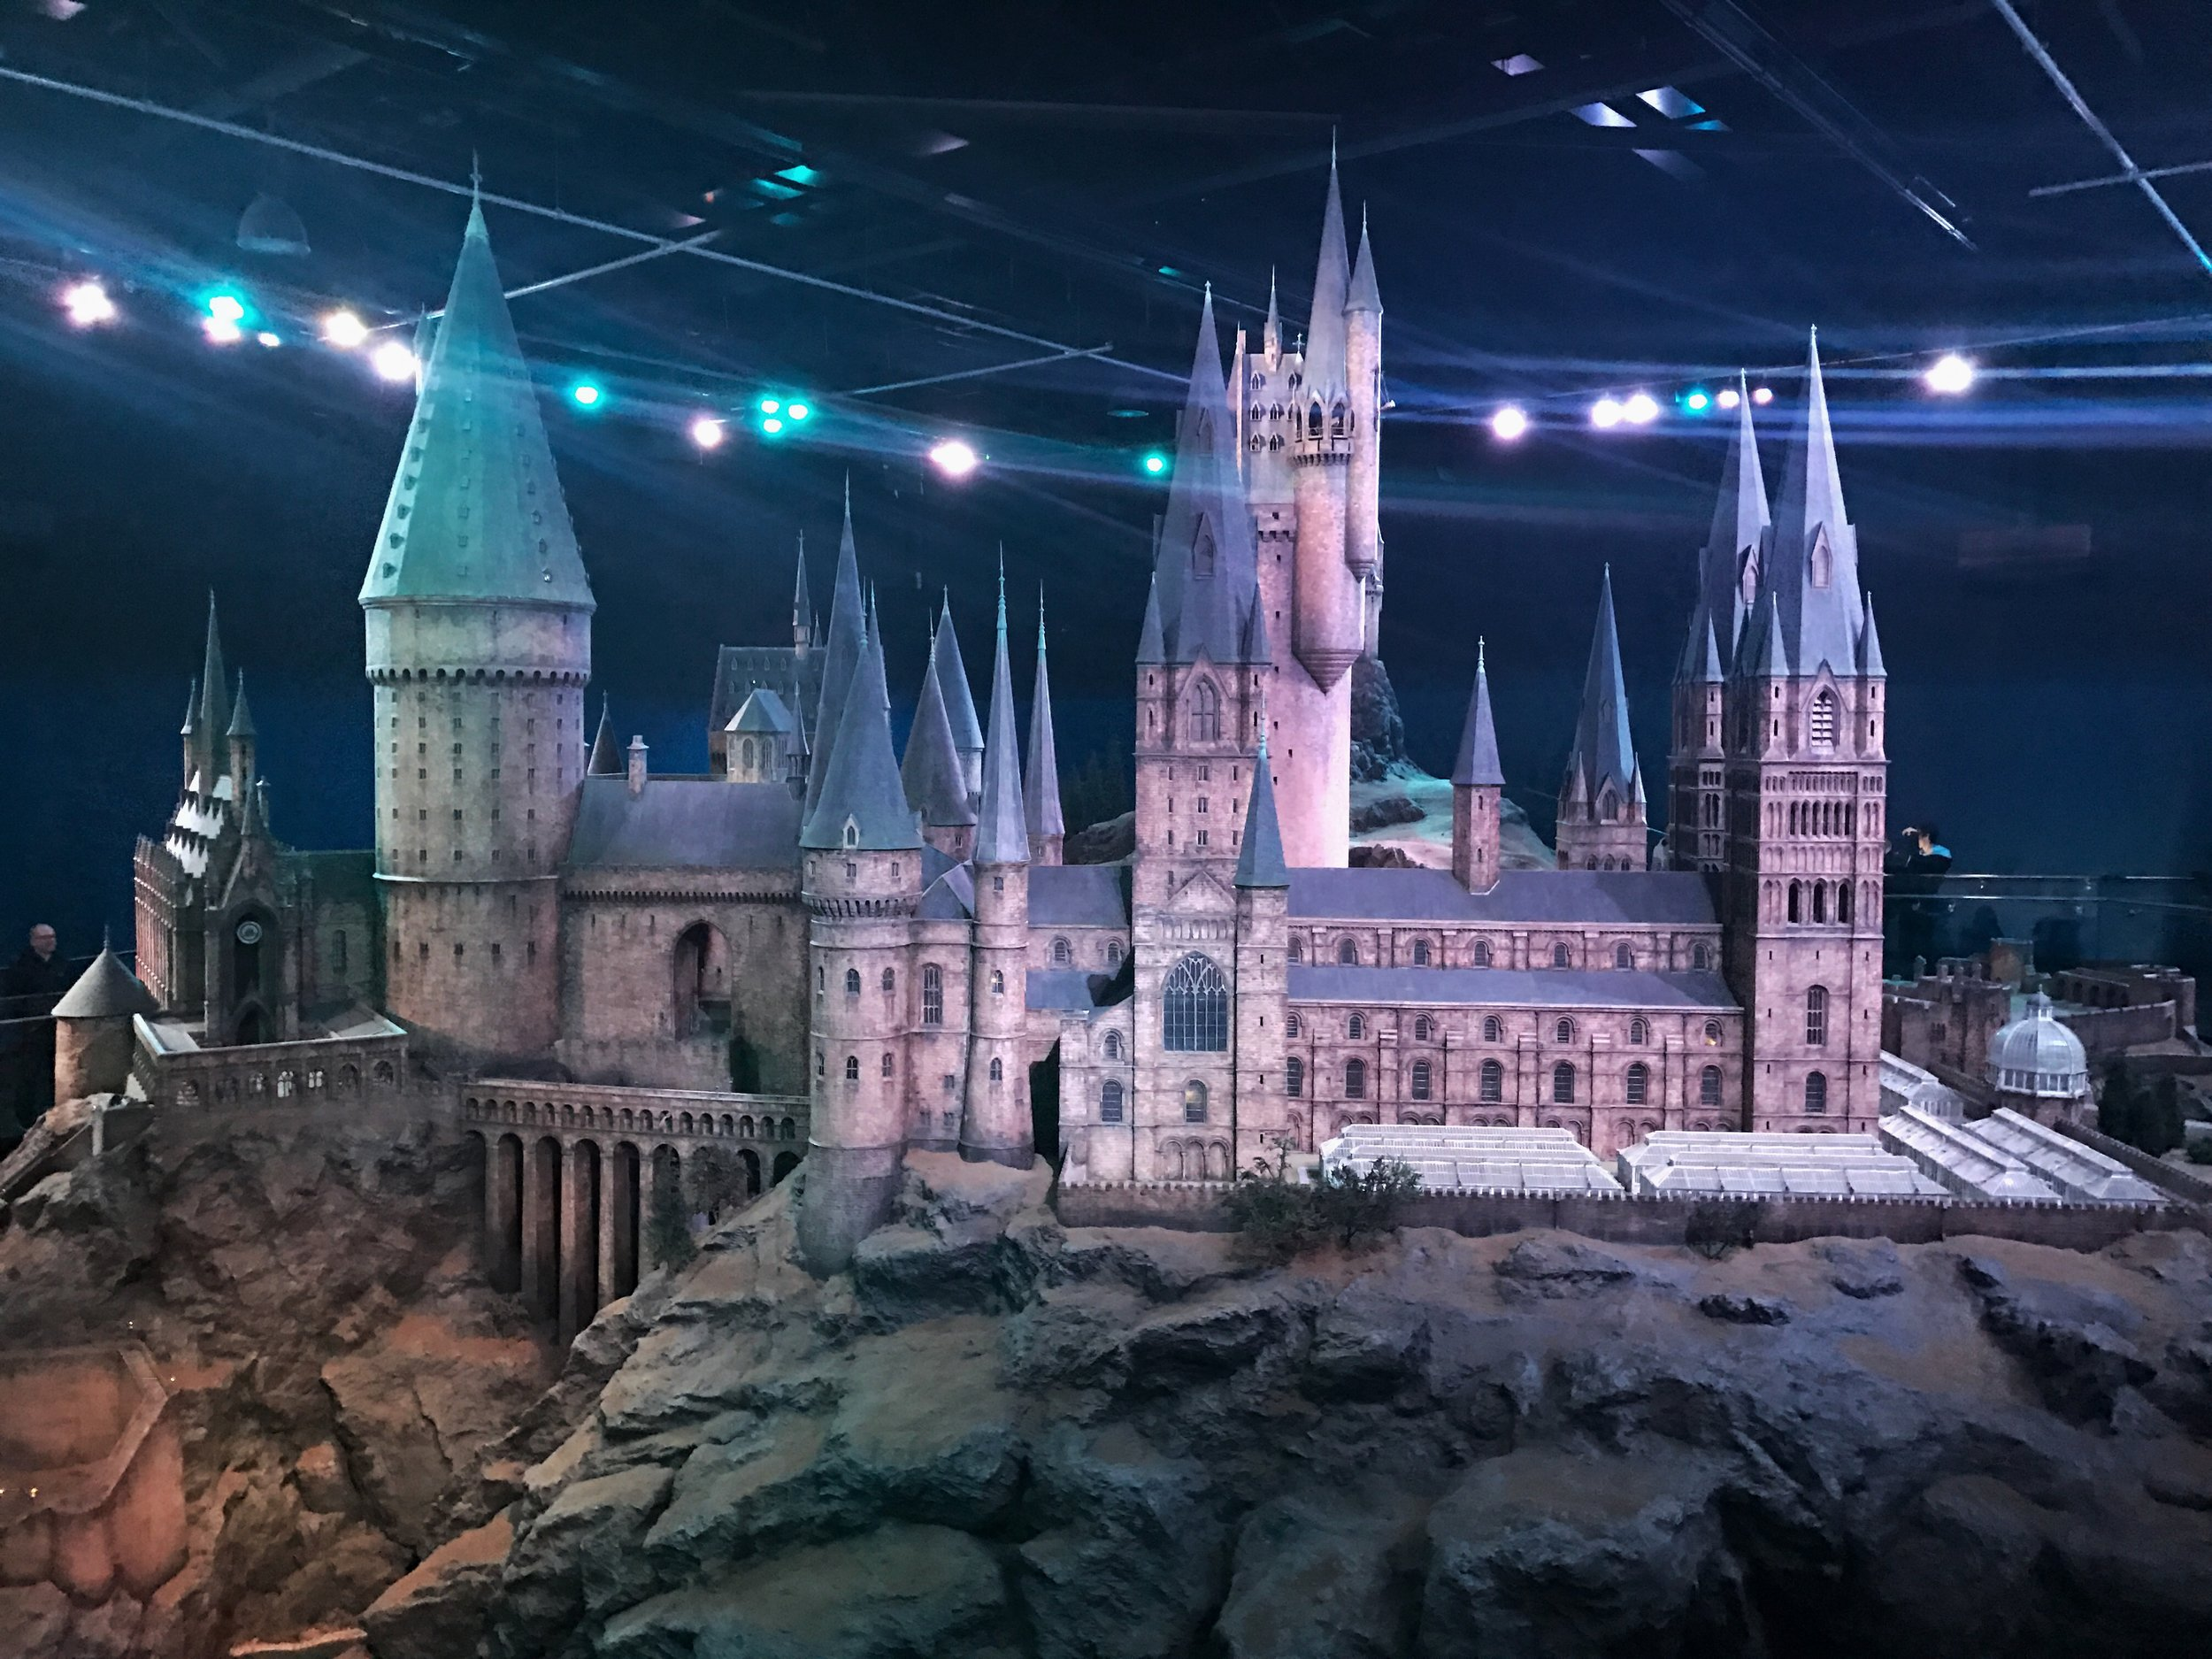 To scale model of Hogwarts